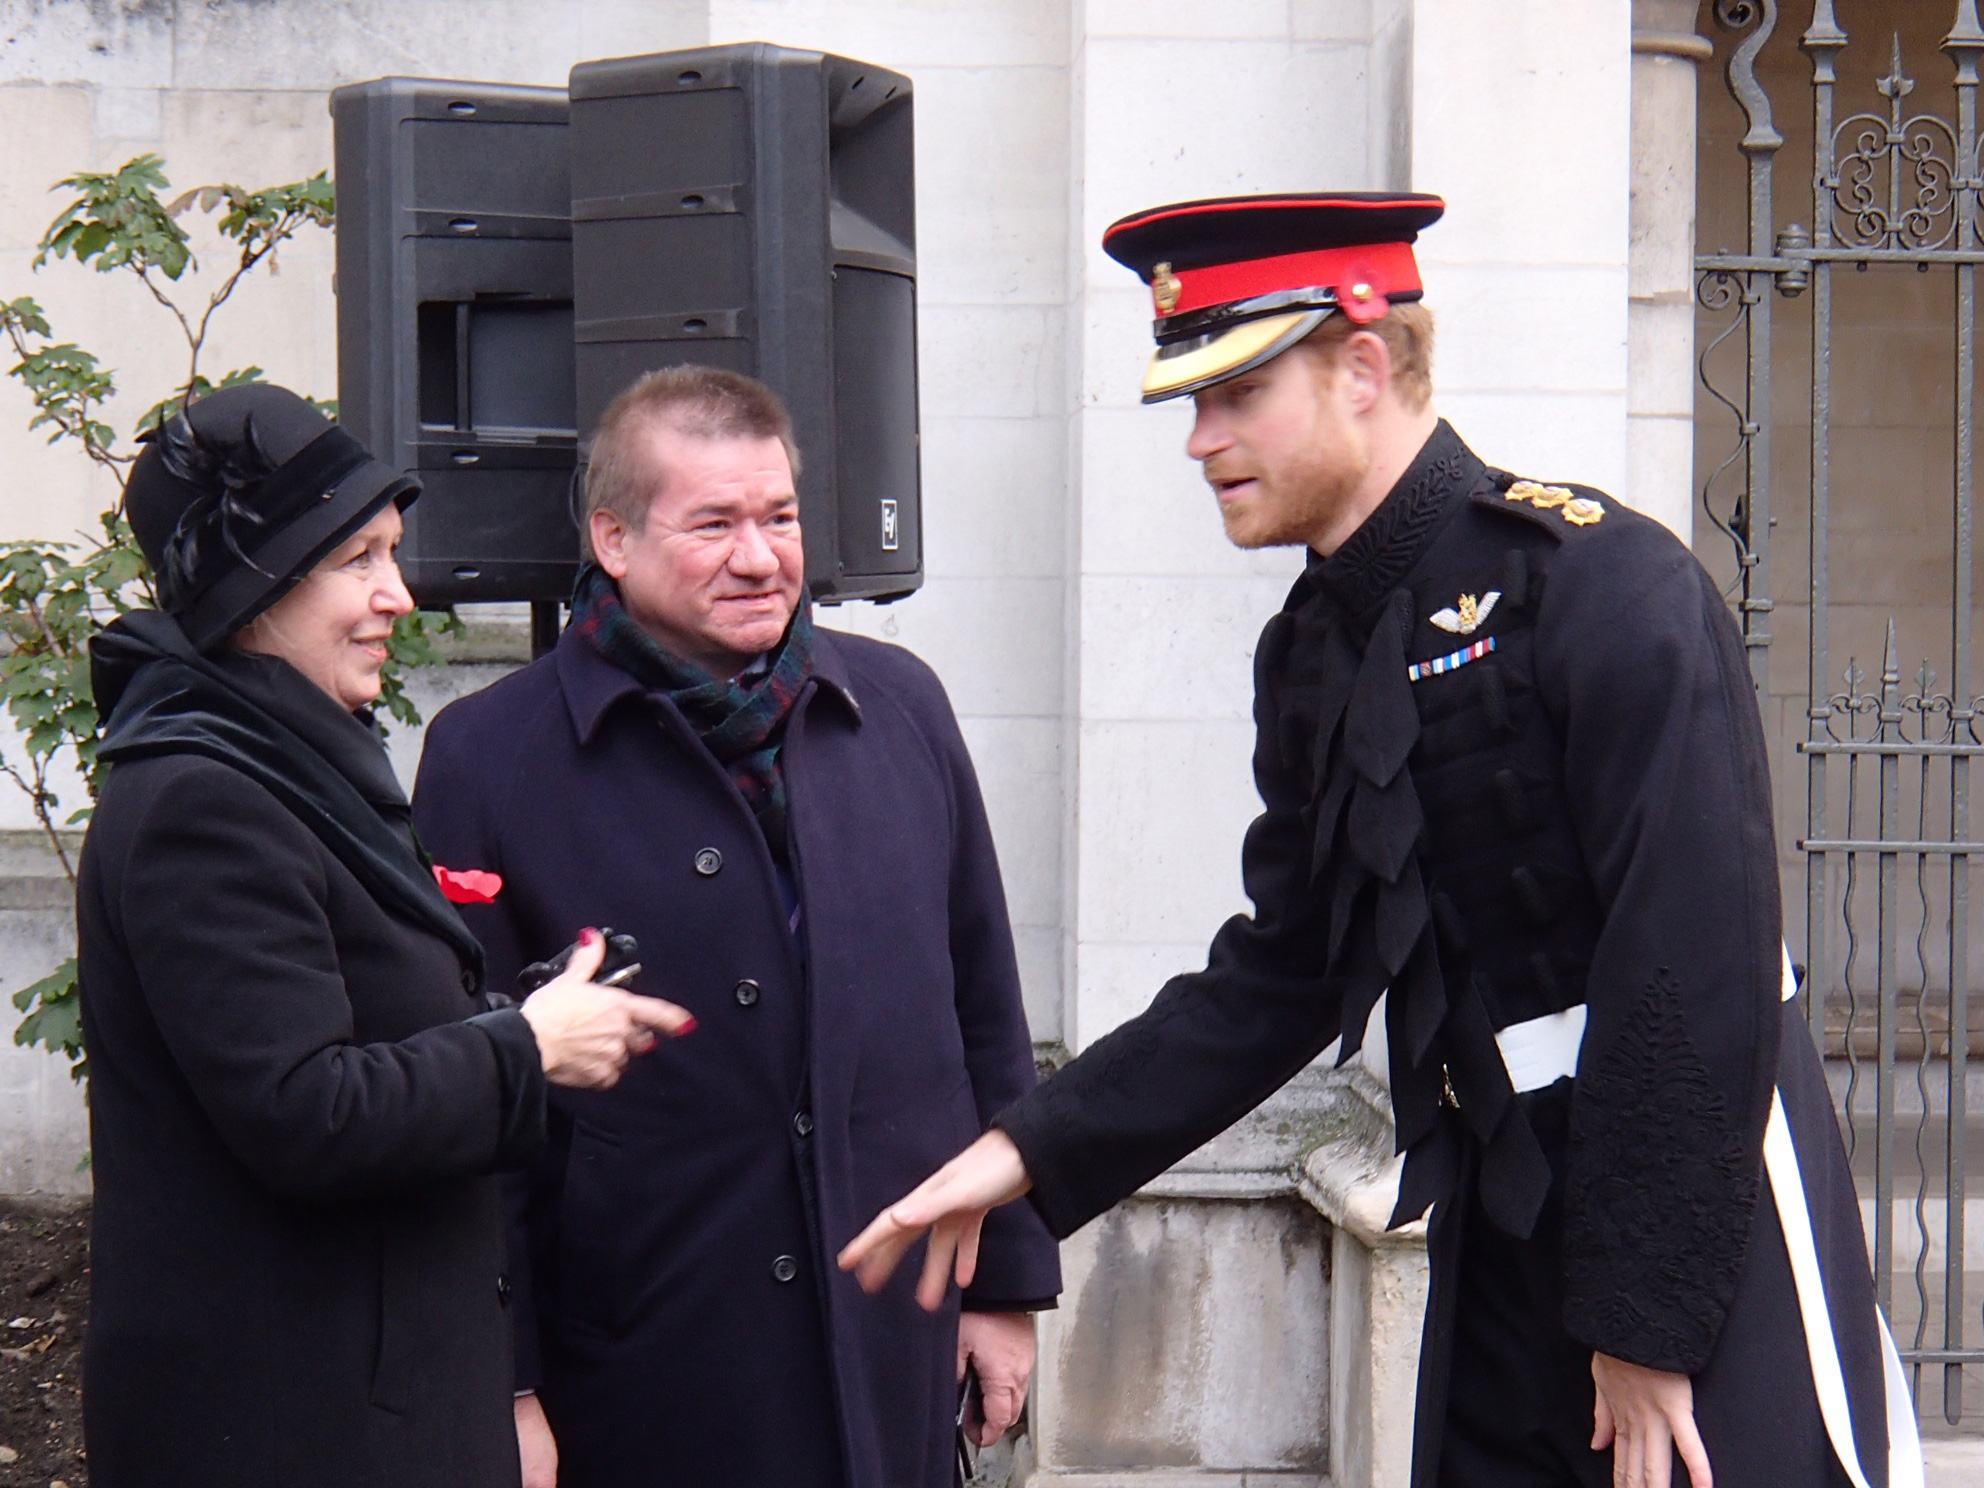 Meeting Prince Harry on Remembrance Day 2016